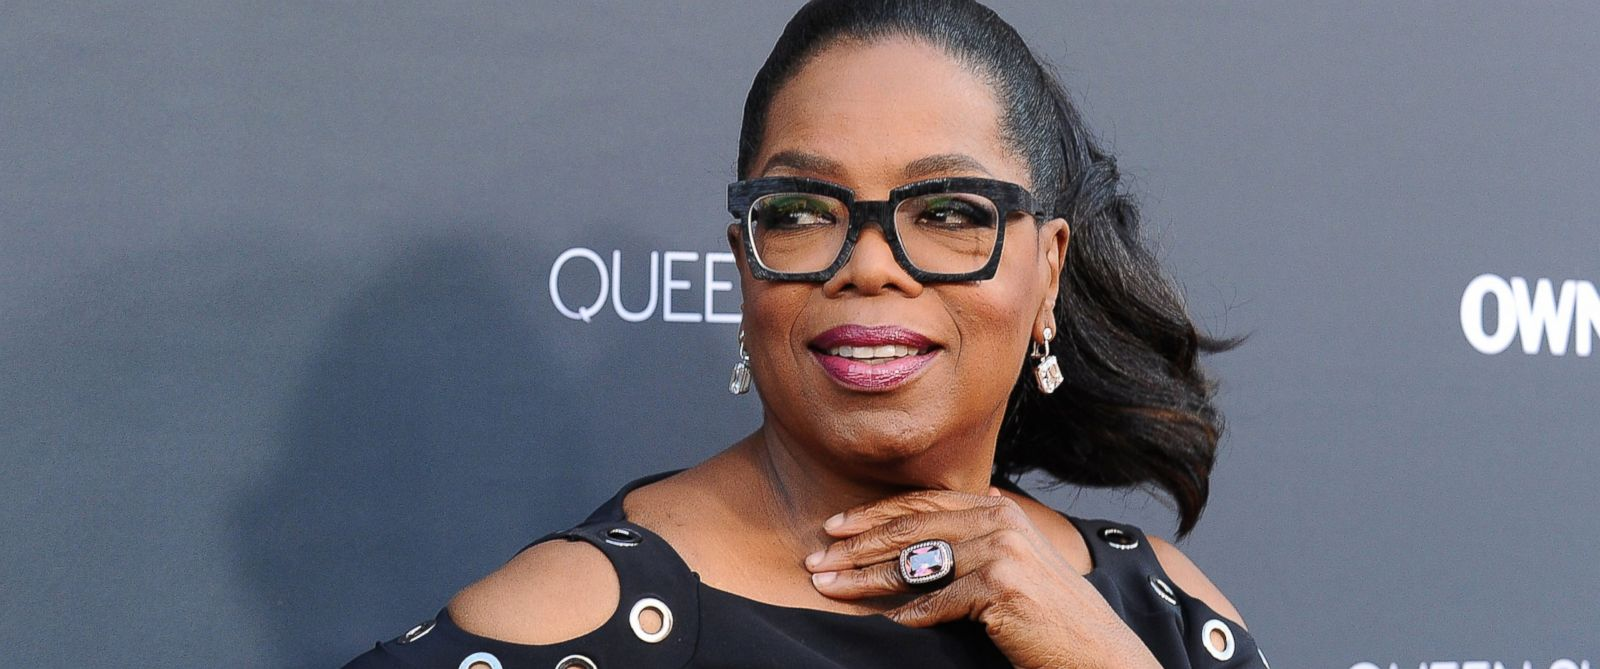 oprah essay contest on night Mr wiesel will also appear on a segment of the oprah winfrey show to be taped in february that will feature winners of a national high school essay contest based on the book.